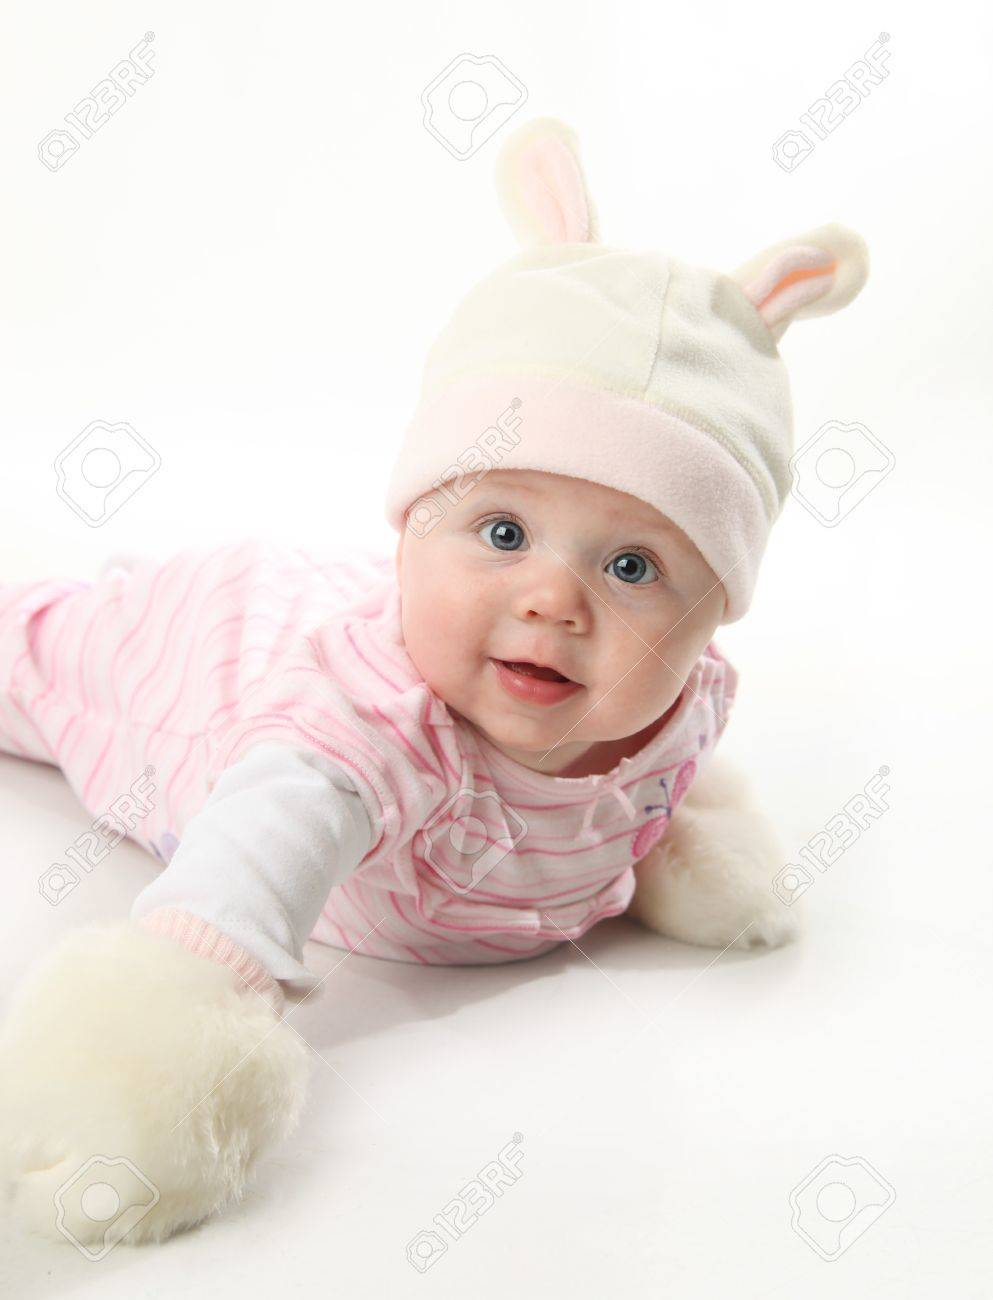 Portrait of an adorable baby girl wearing a bunny rabbit costume and furry mittens - 8710180